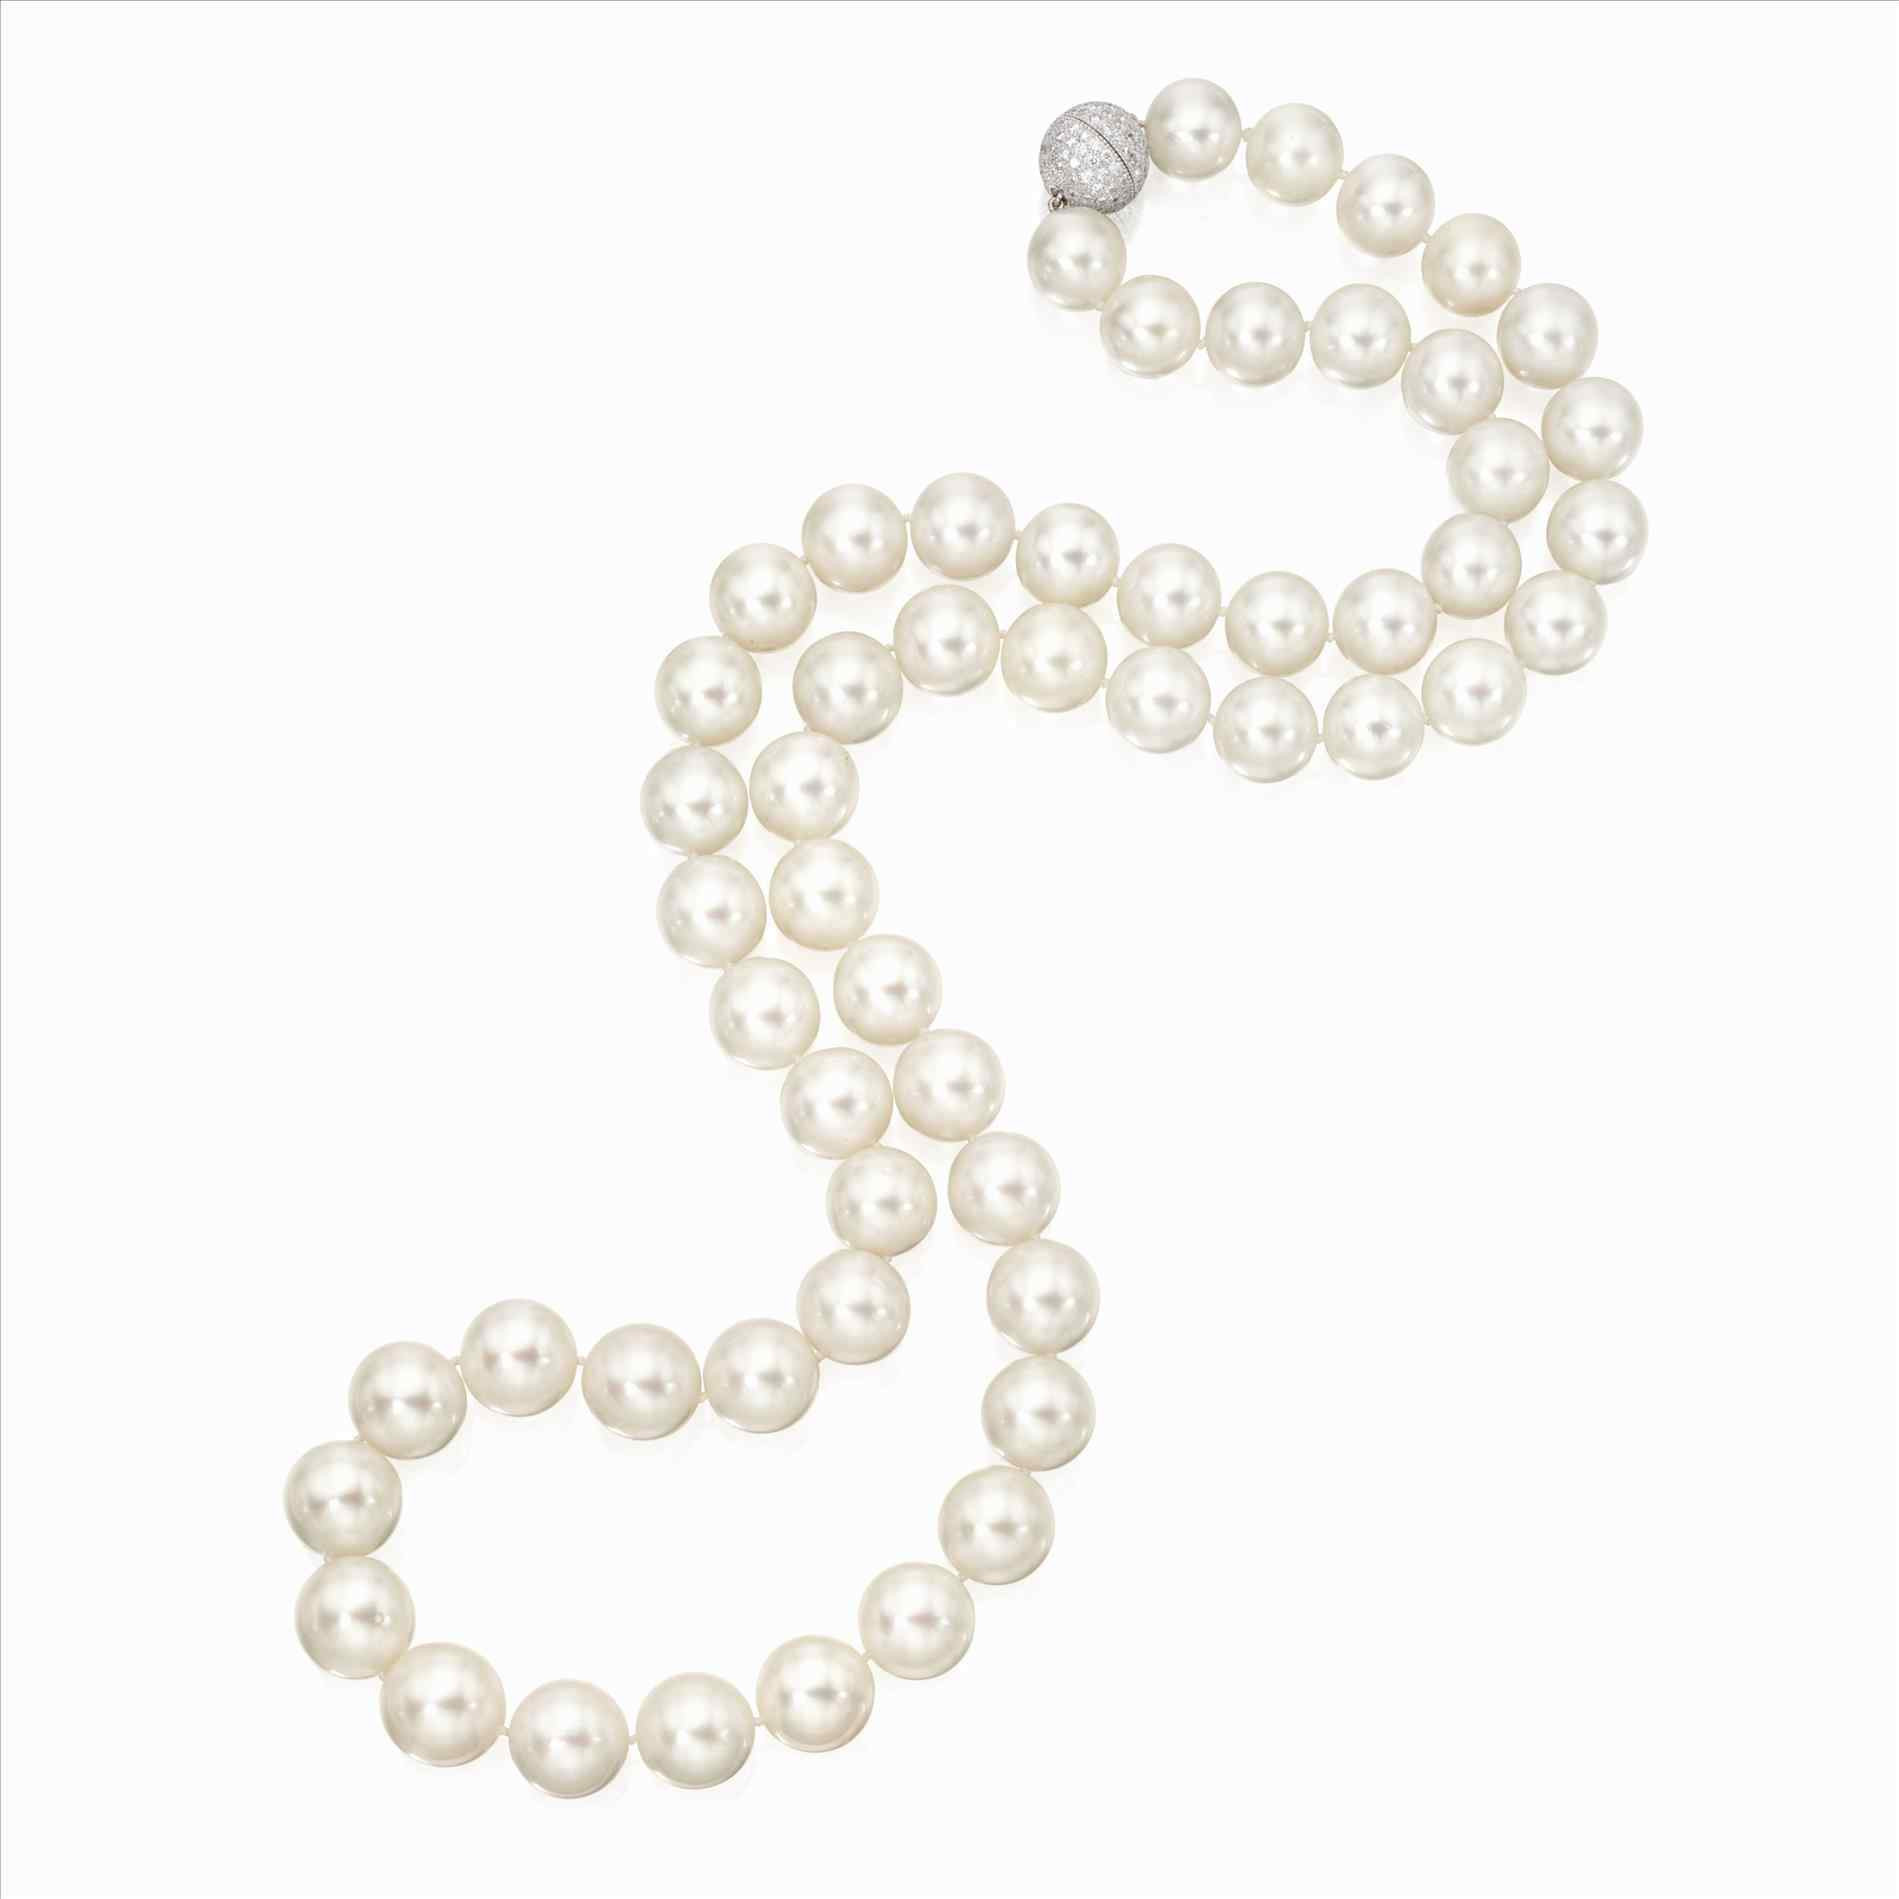 Pearls clipart. Diamonds and athelred com